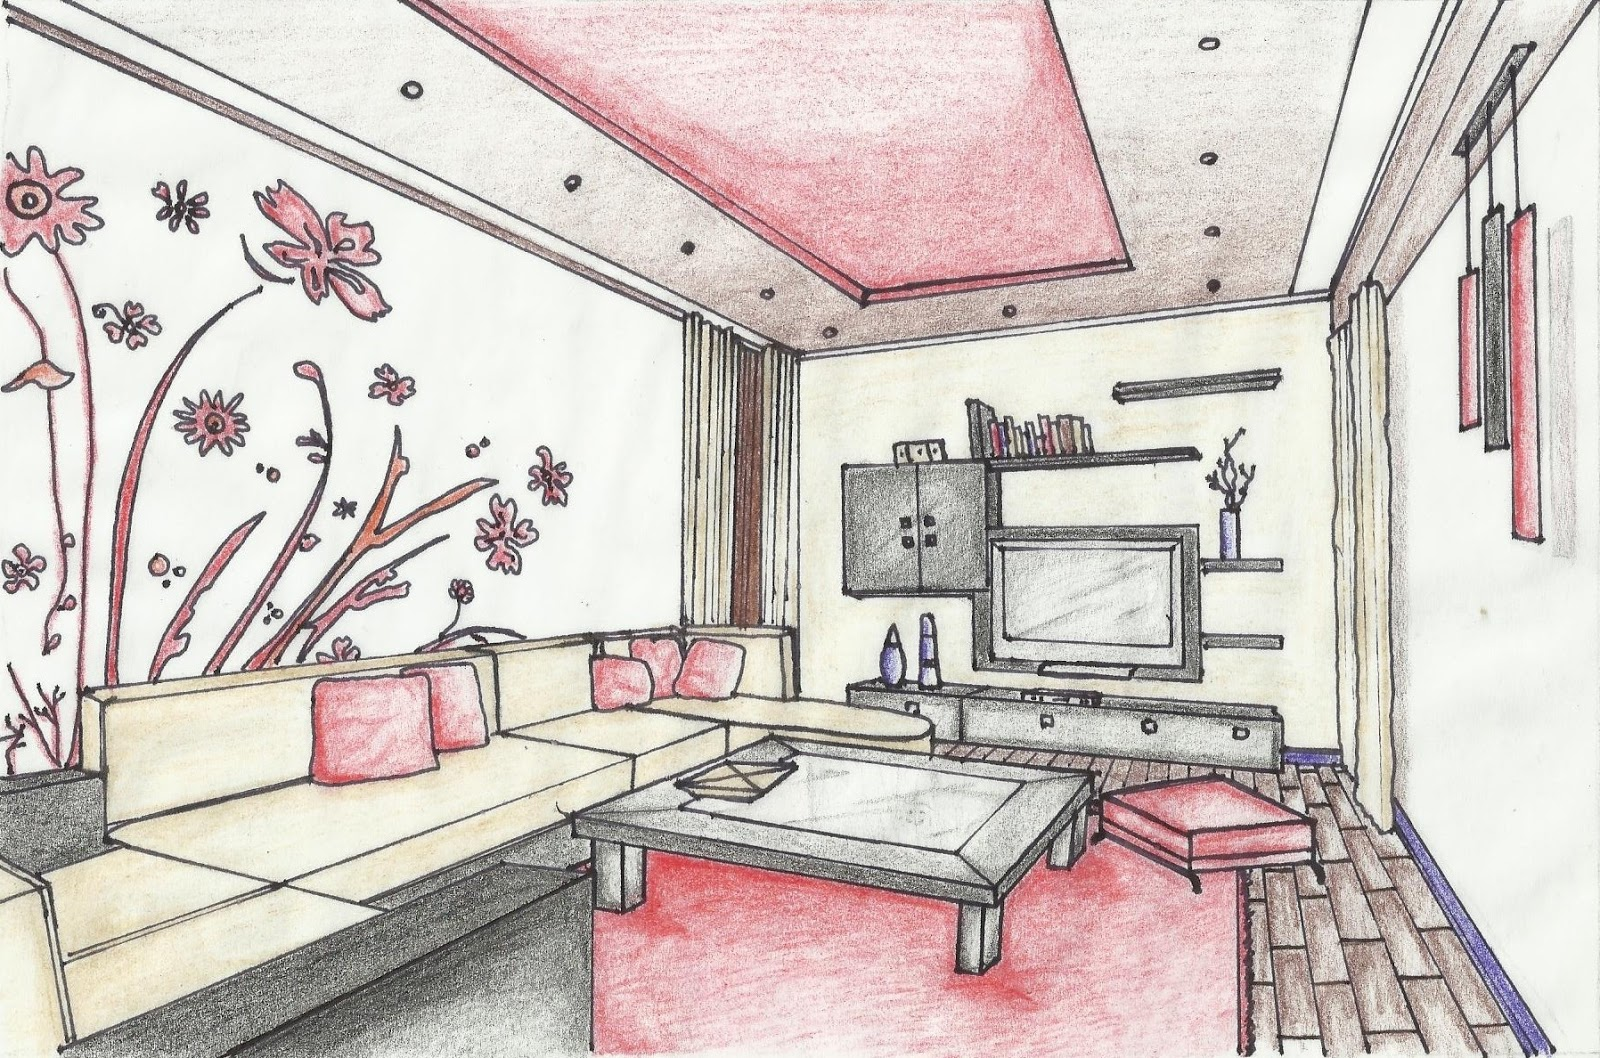 Manchester school of architecture portfolio sketches Room design site